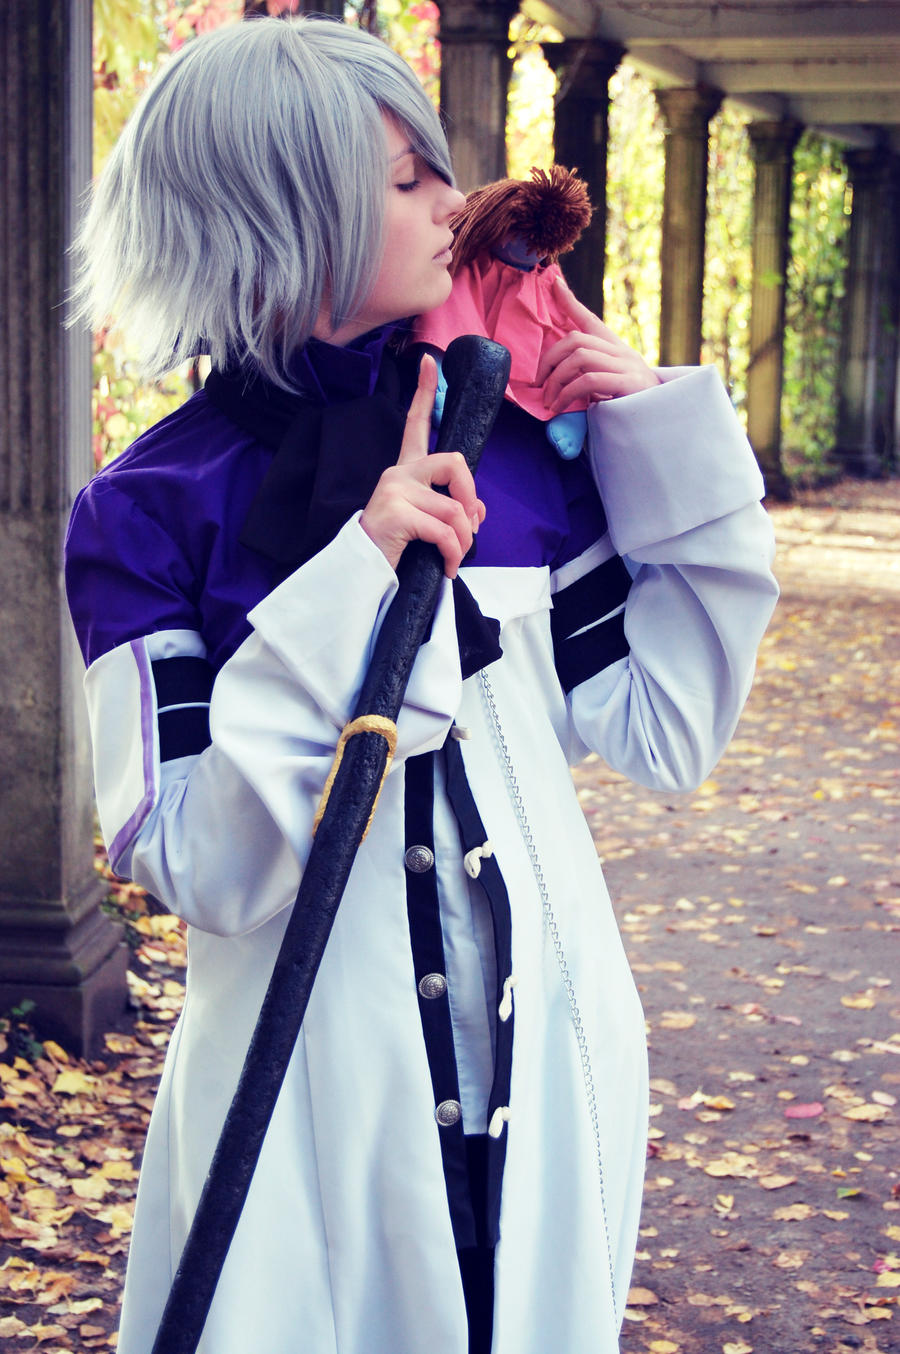 Pandora Hearts cosplay 2 by Anoska on DeviantArt